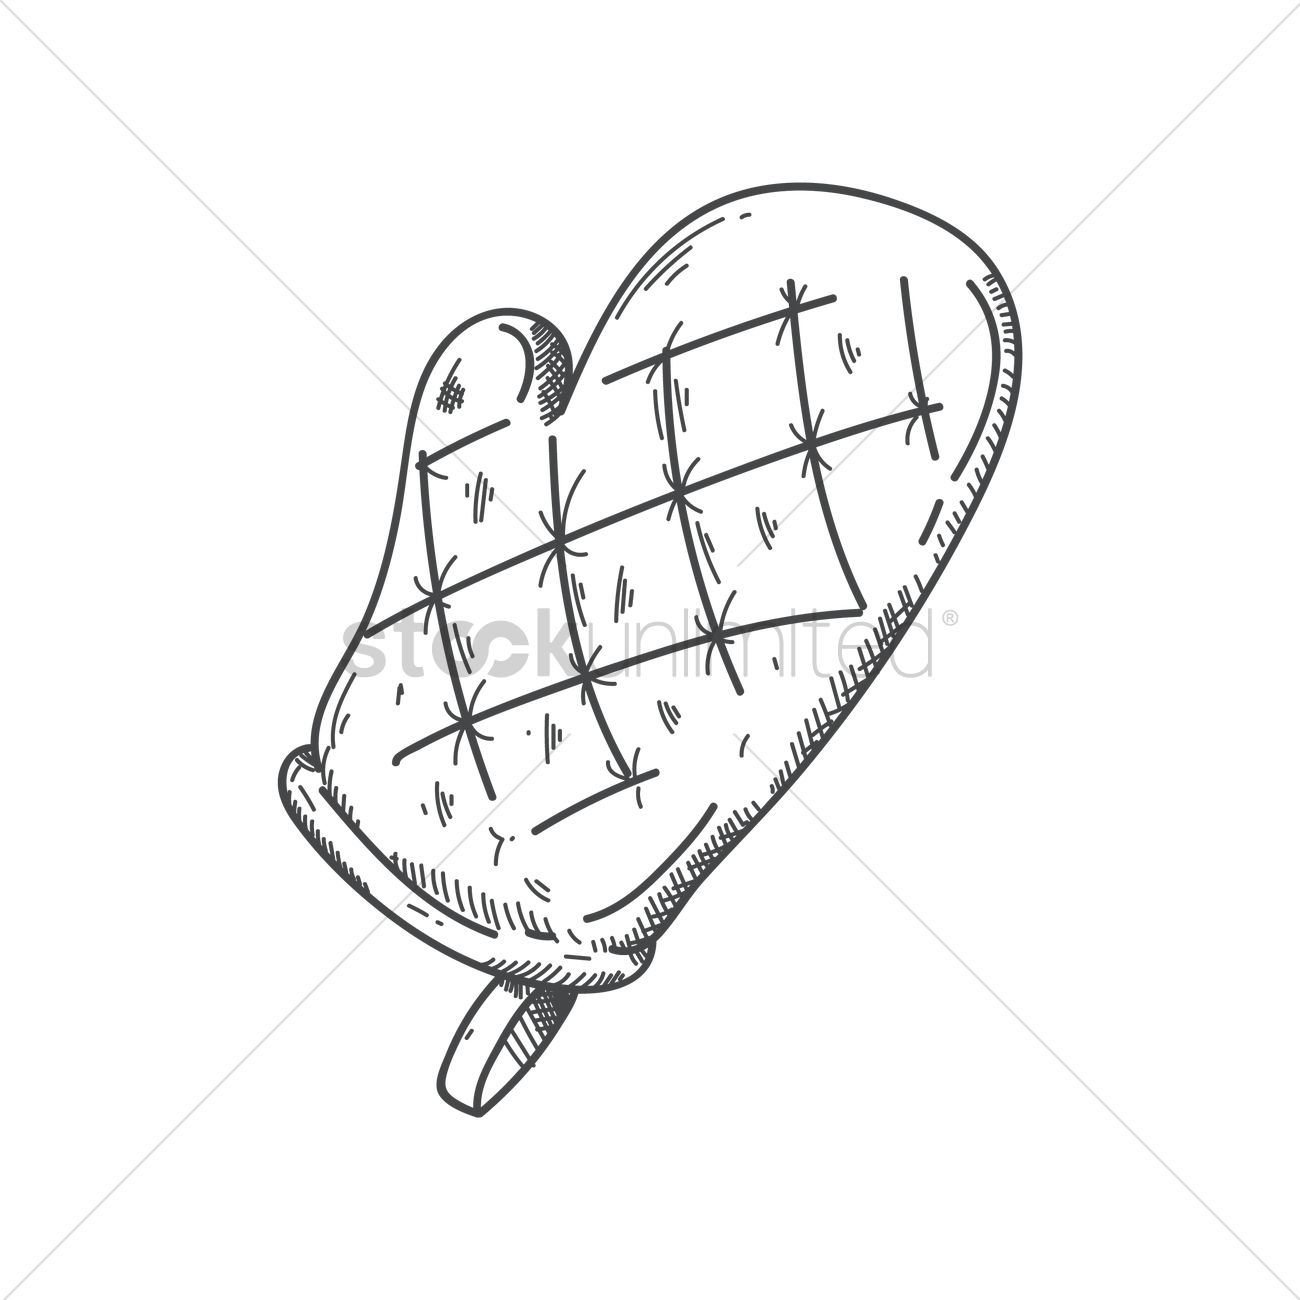 Oven Glove Vector Image 1819335 Stockunlimited